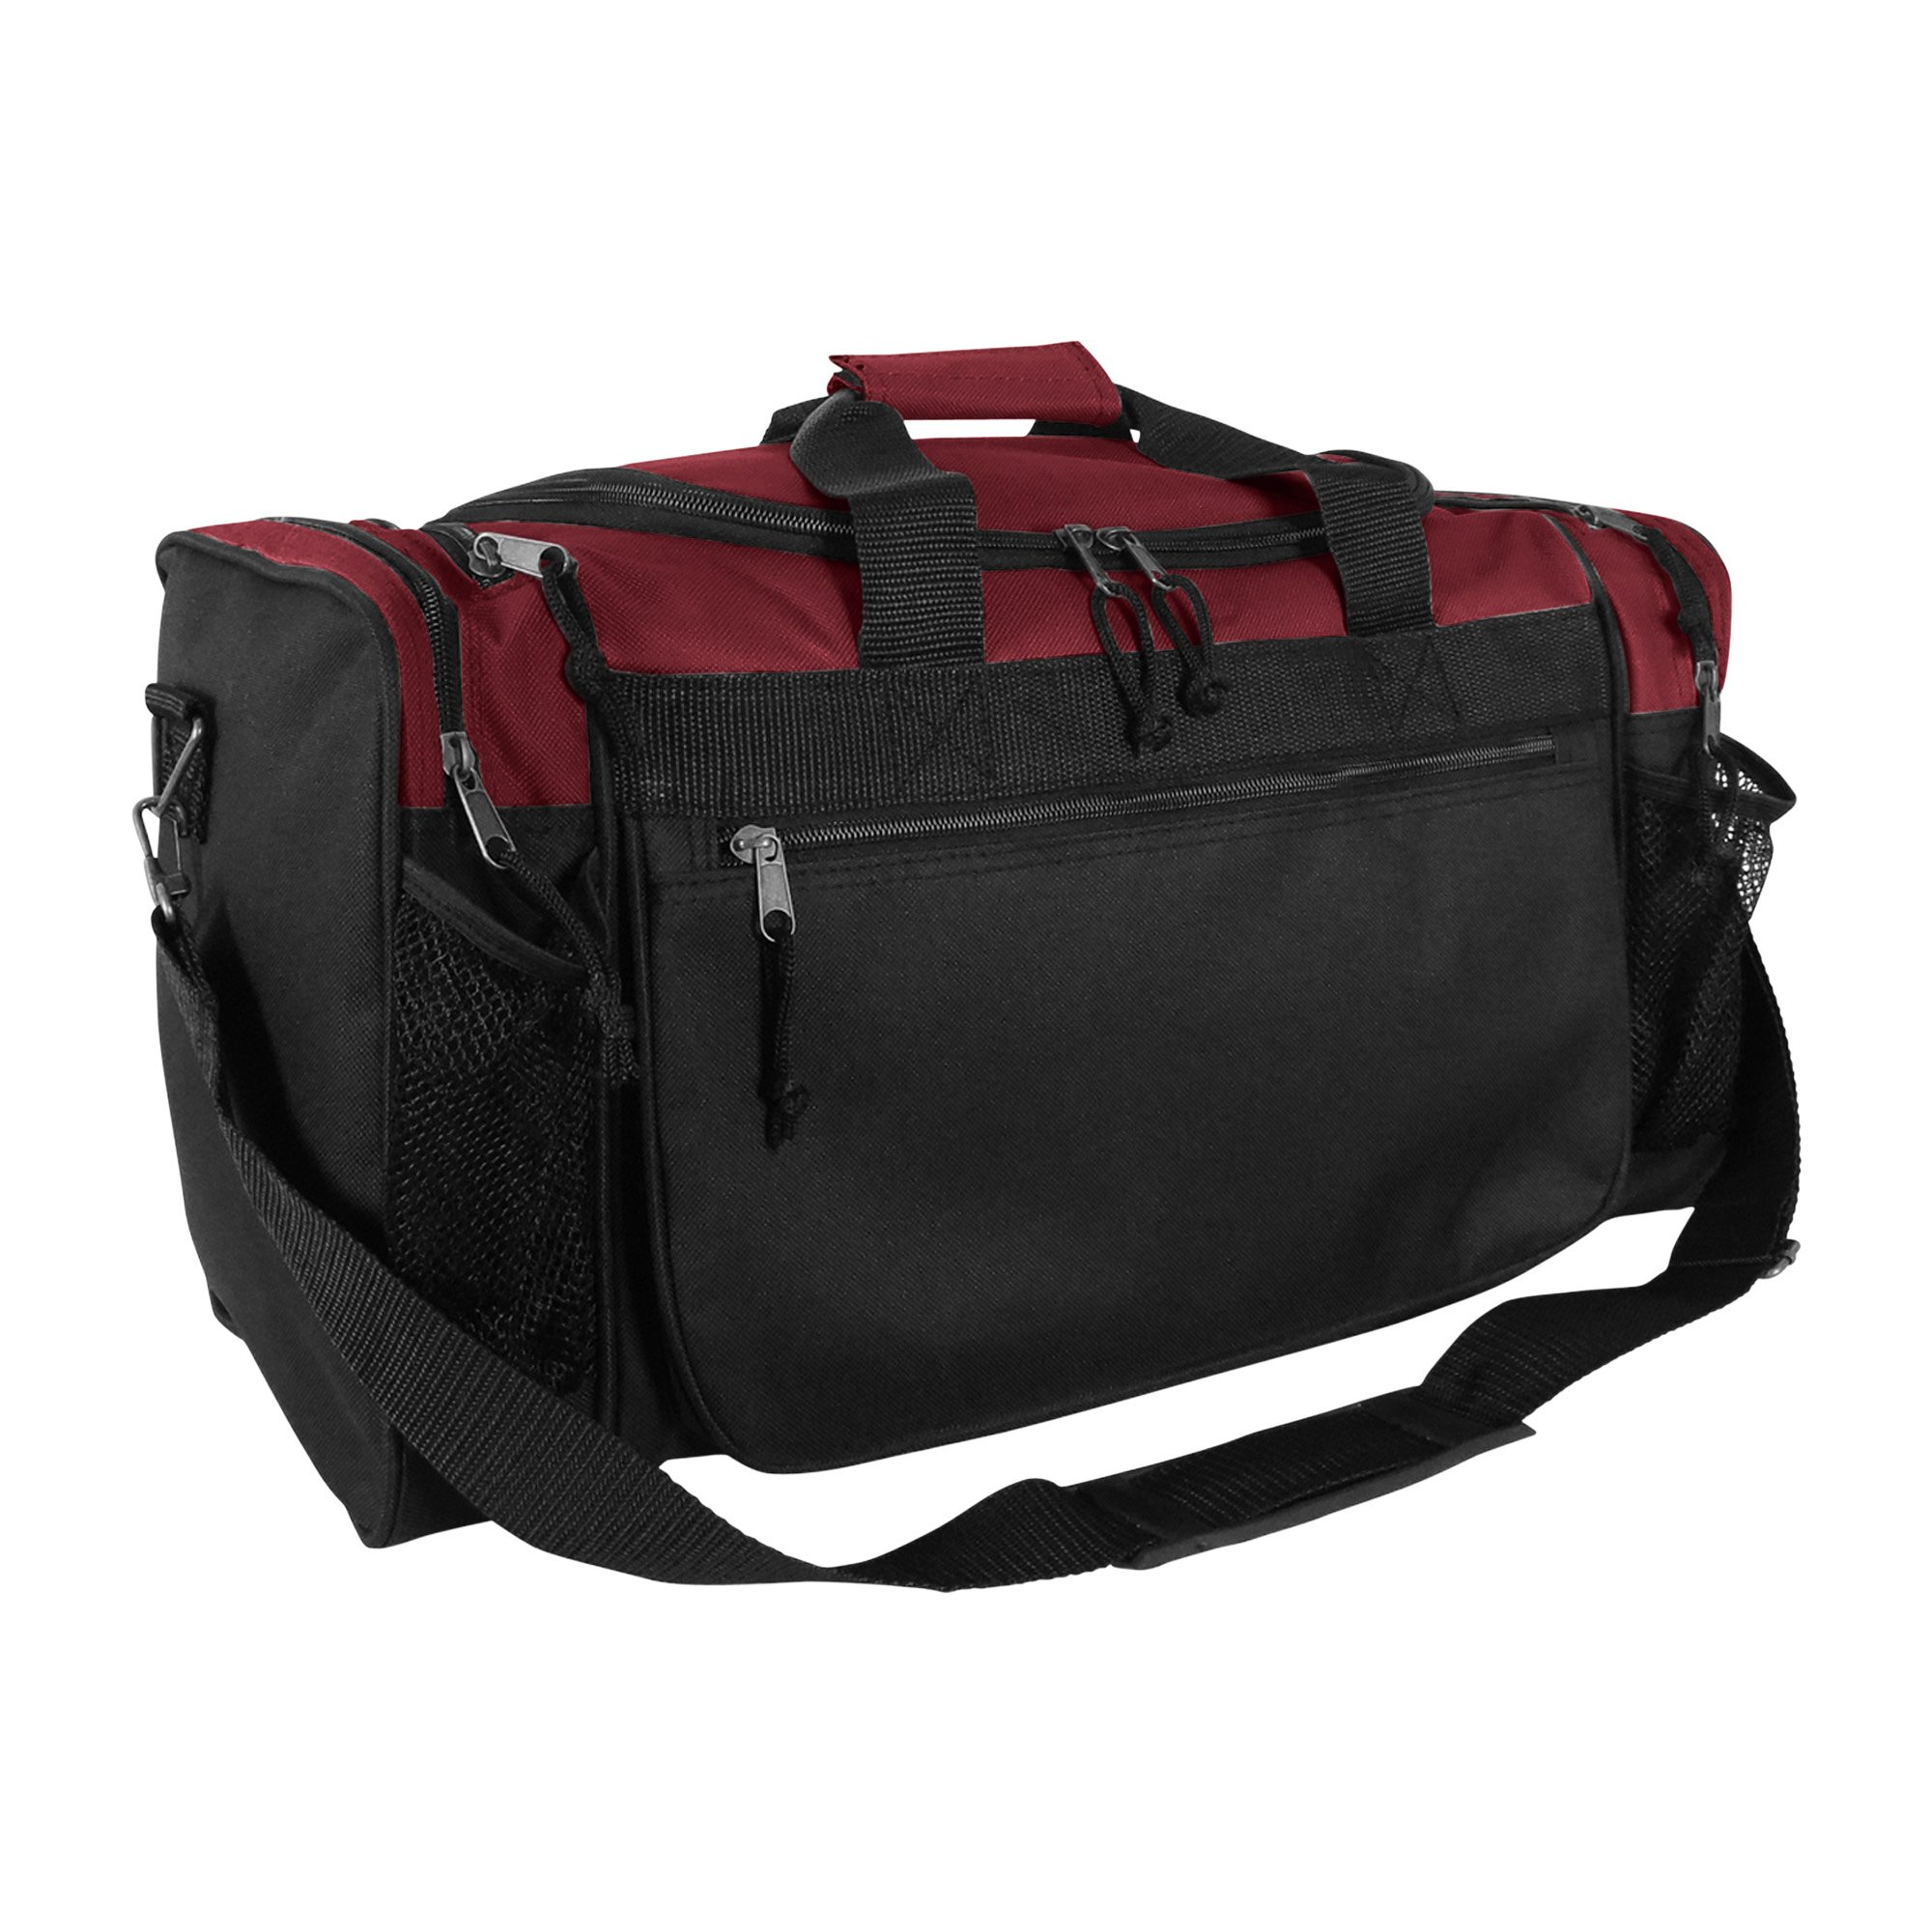 Dalix 20 Inch Sports Duffle Bag with Mesh and Valuables Pockets, Maroon